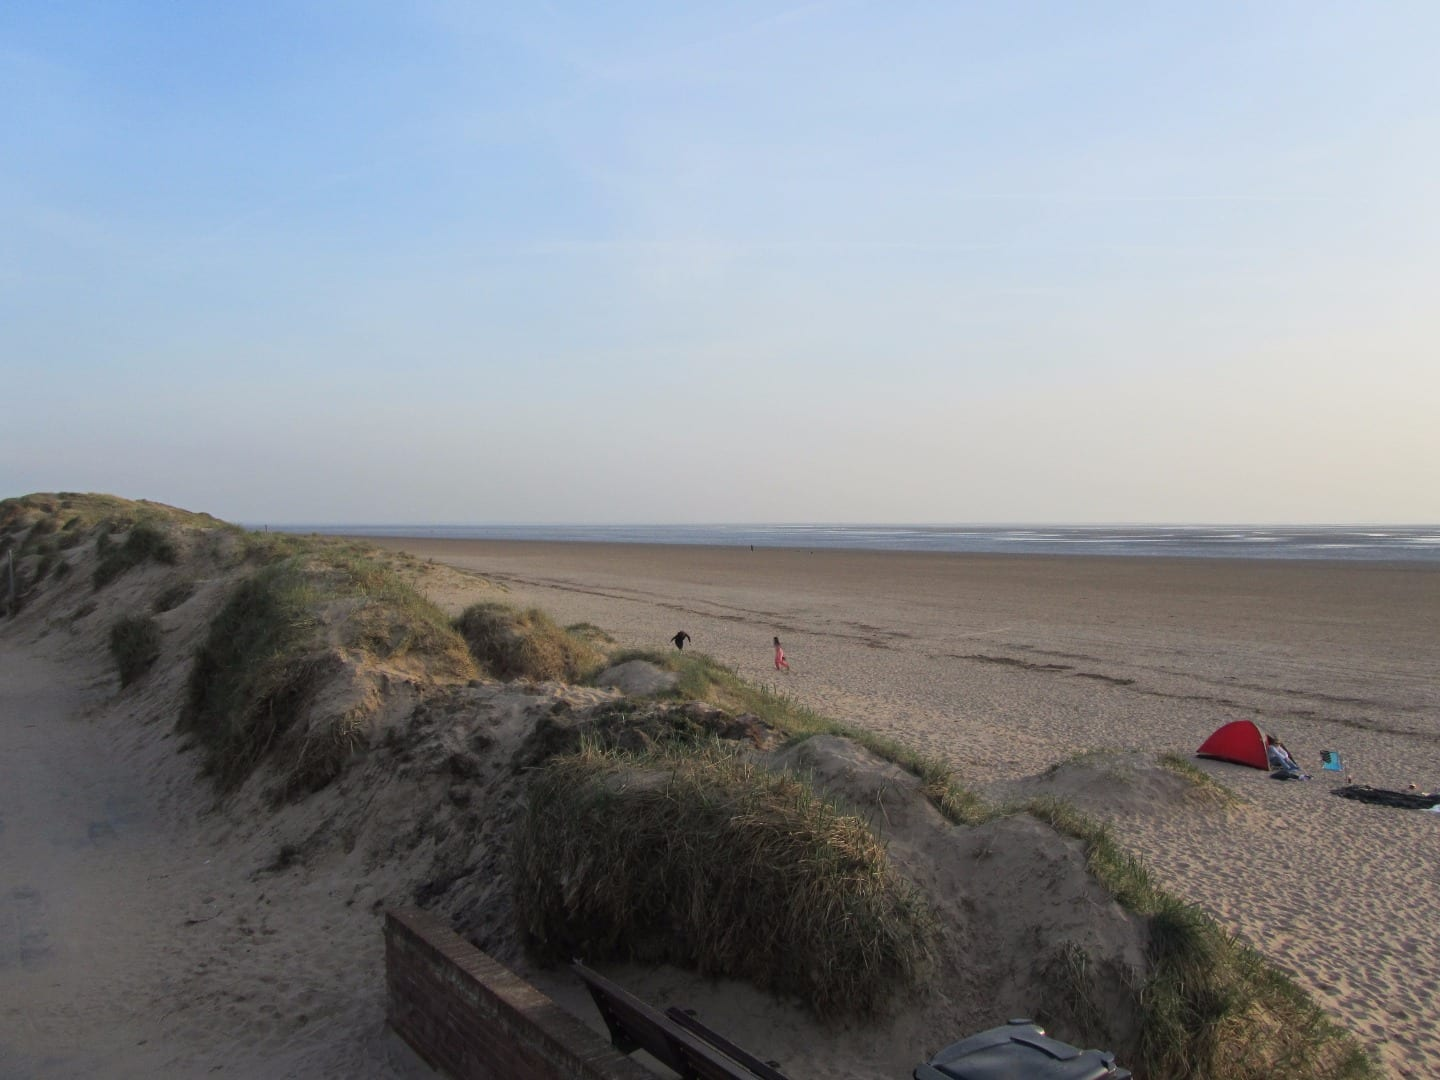 St Annes sand dunes and seafront